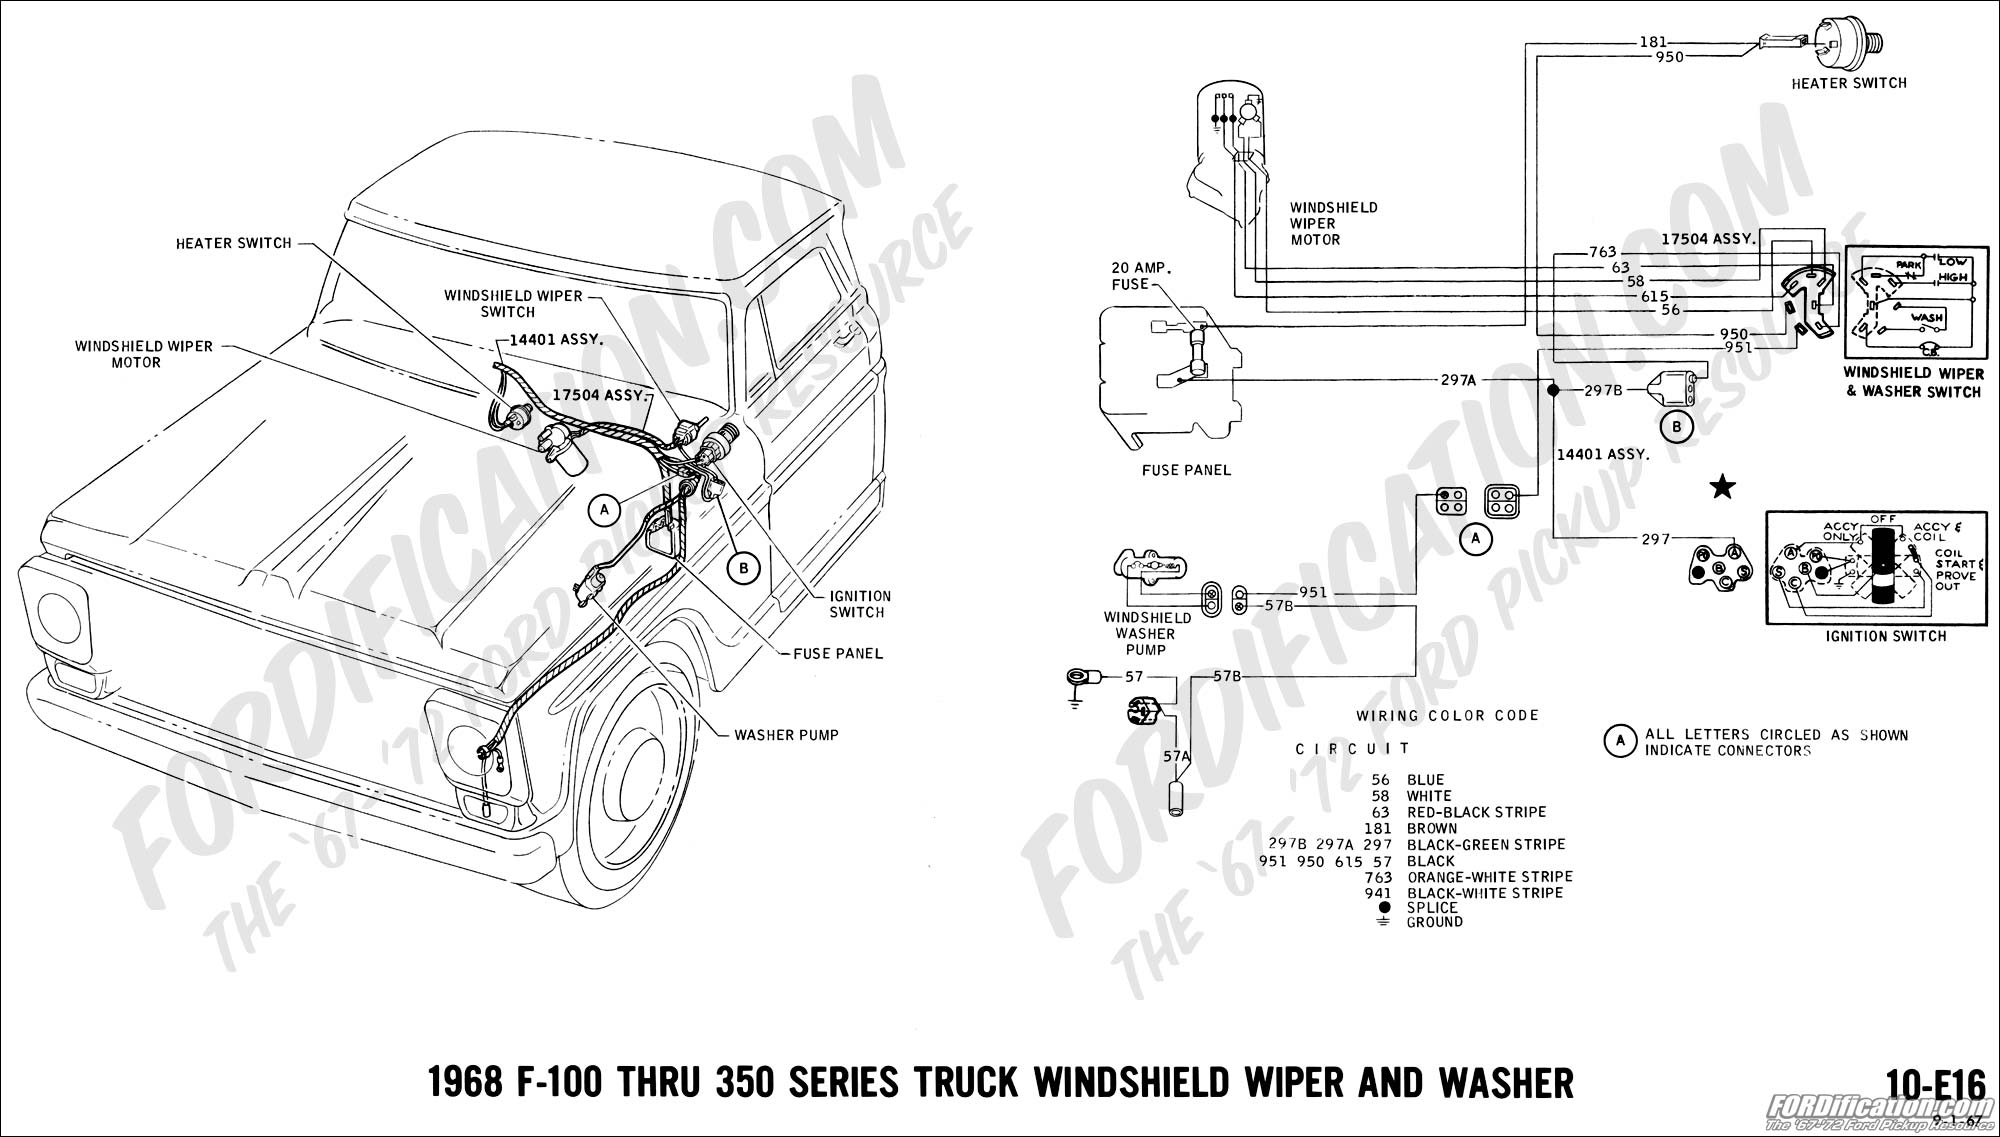 1956 ford f100 wiper motor wiring diagram electrical work wiring rh aglabs co